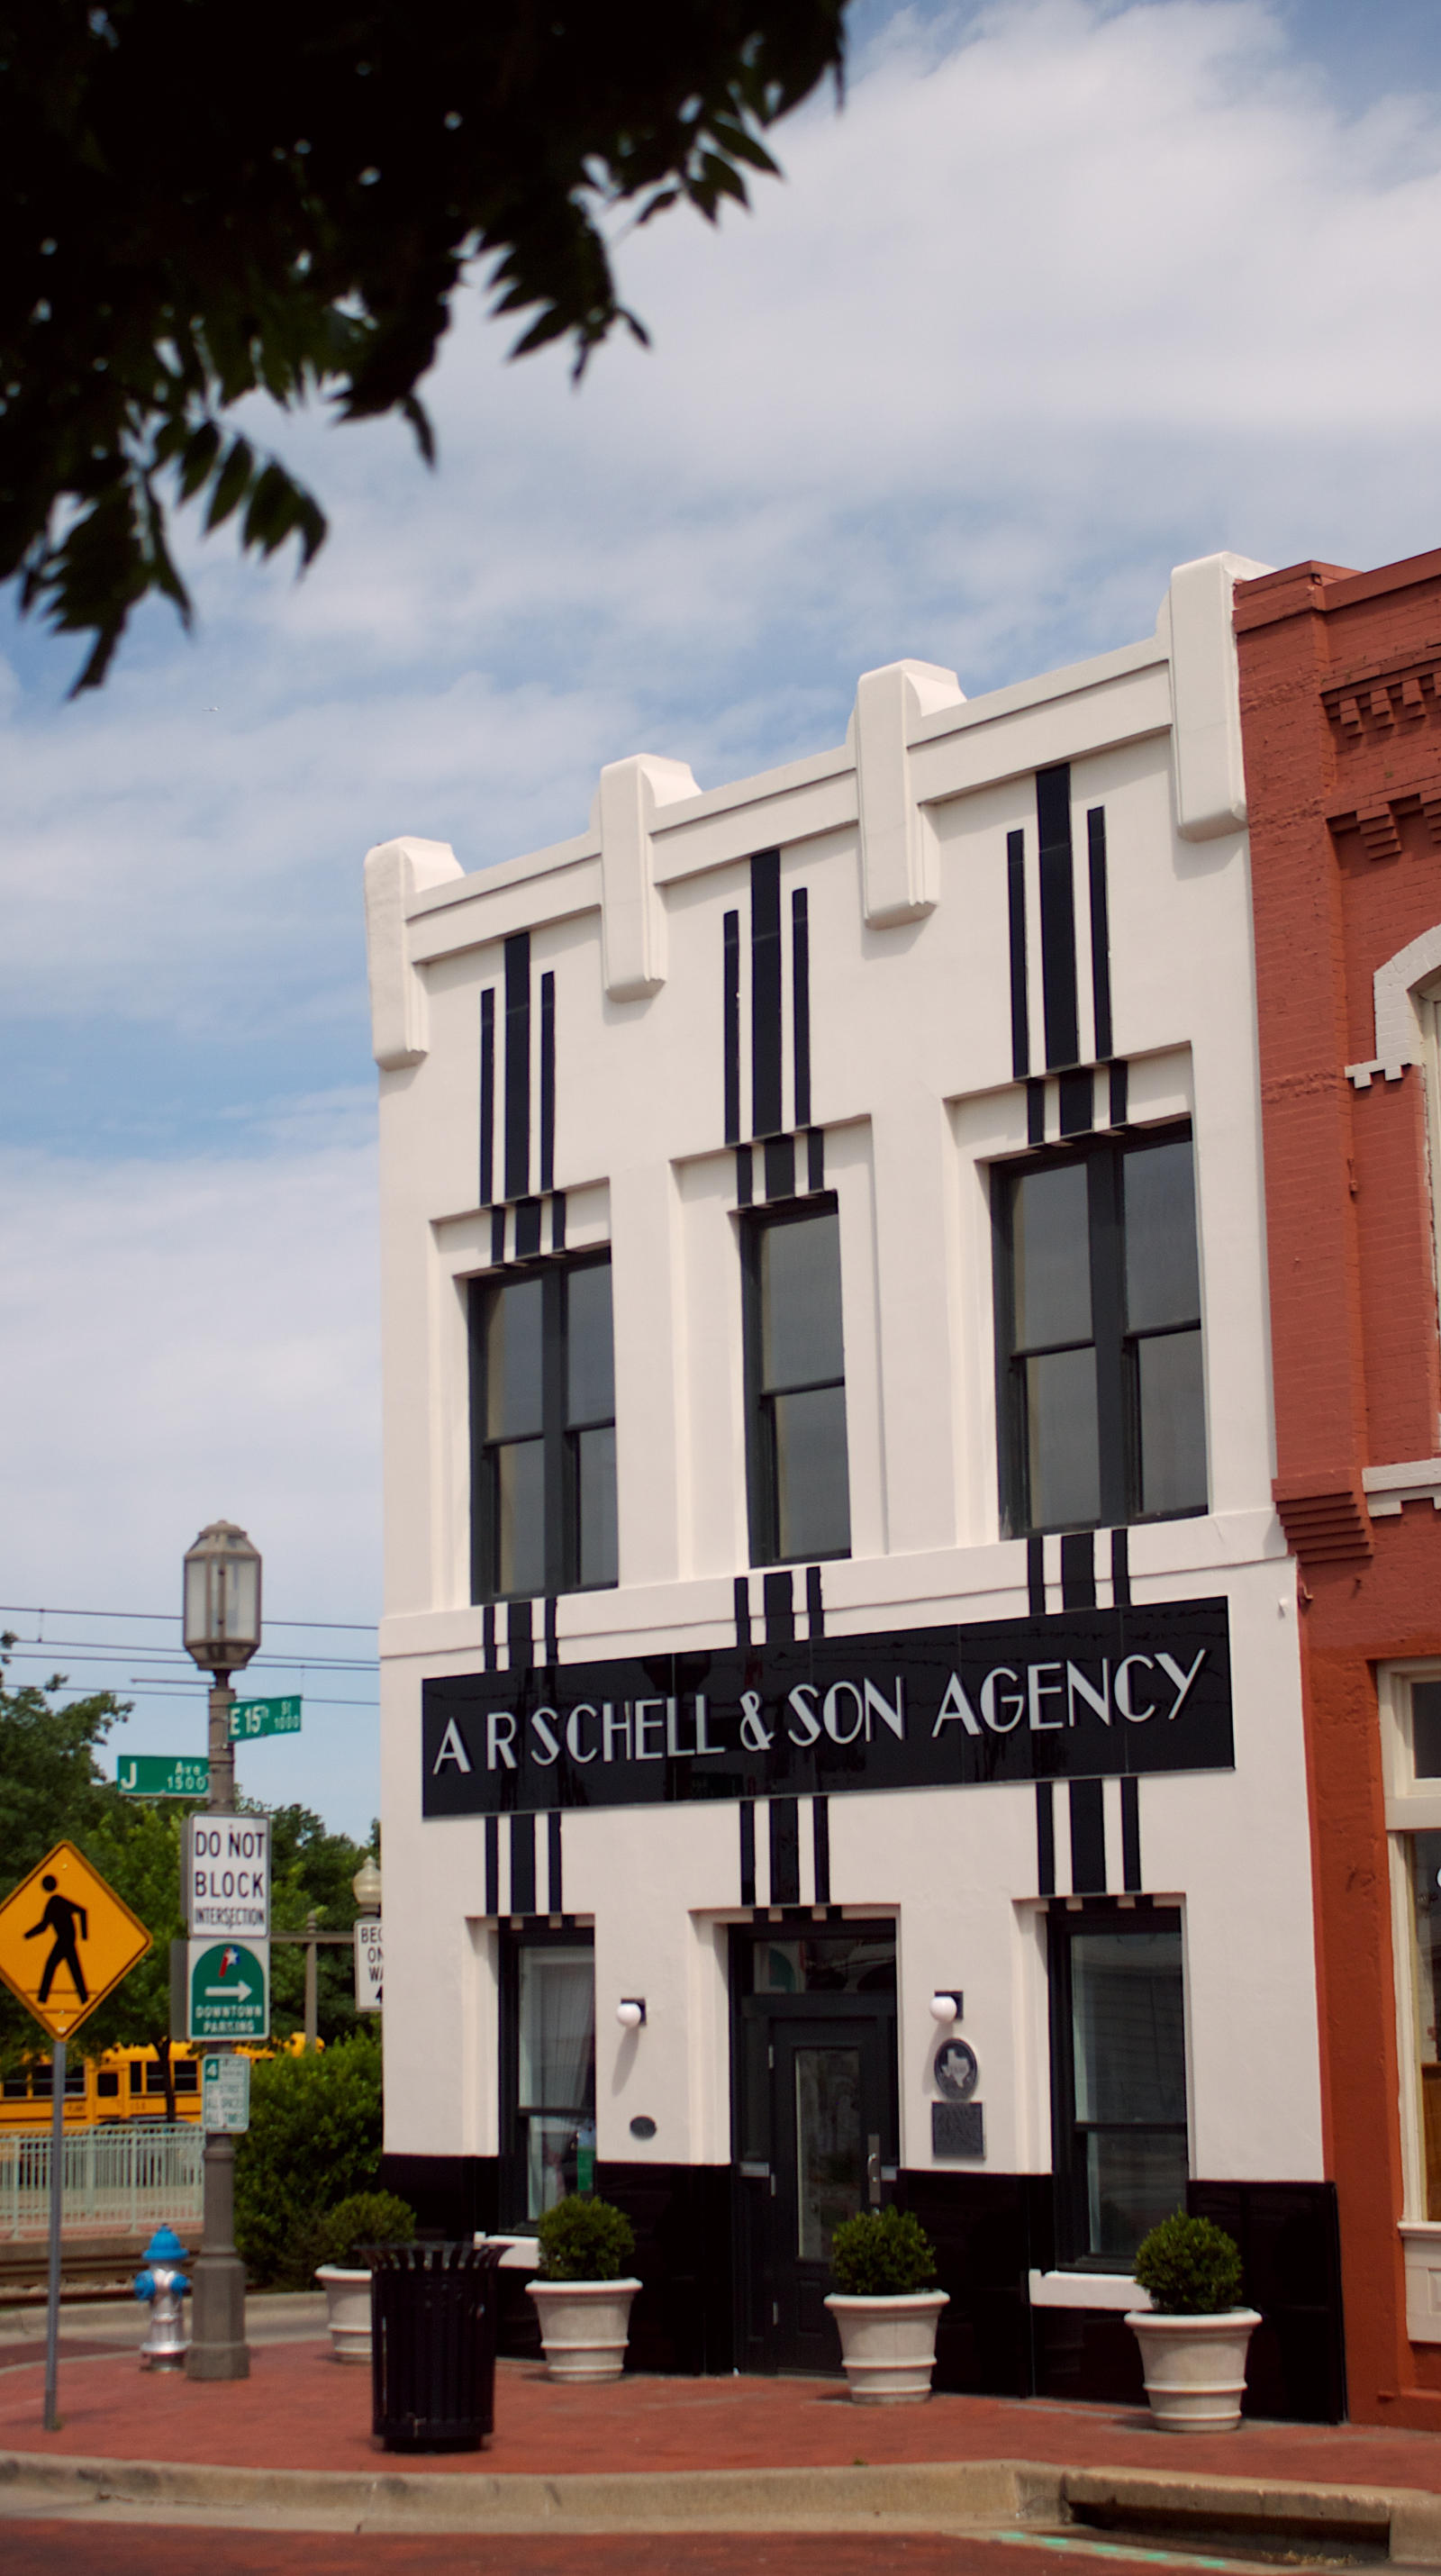 A R Schell and Son Agency by MaxHedrm0